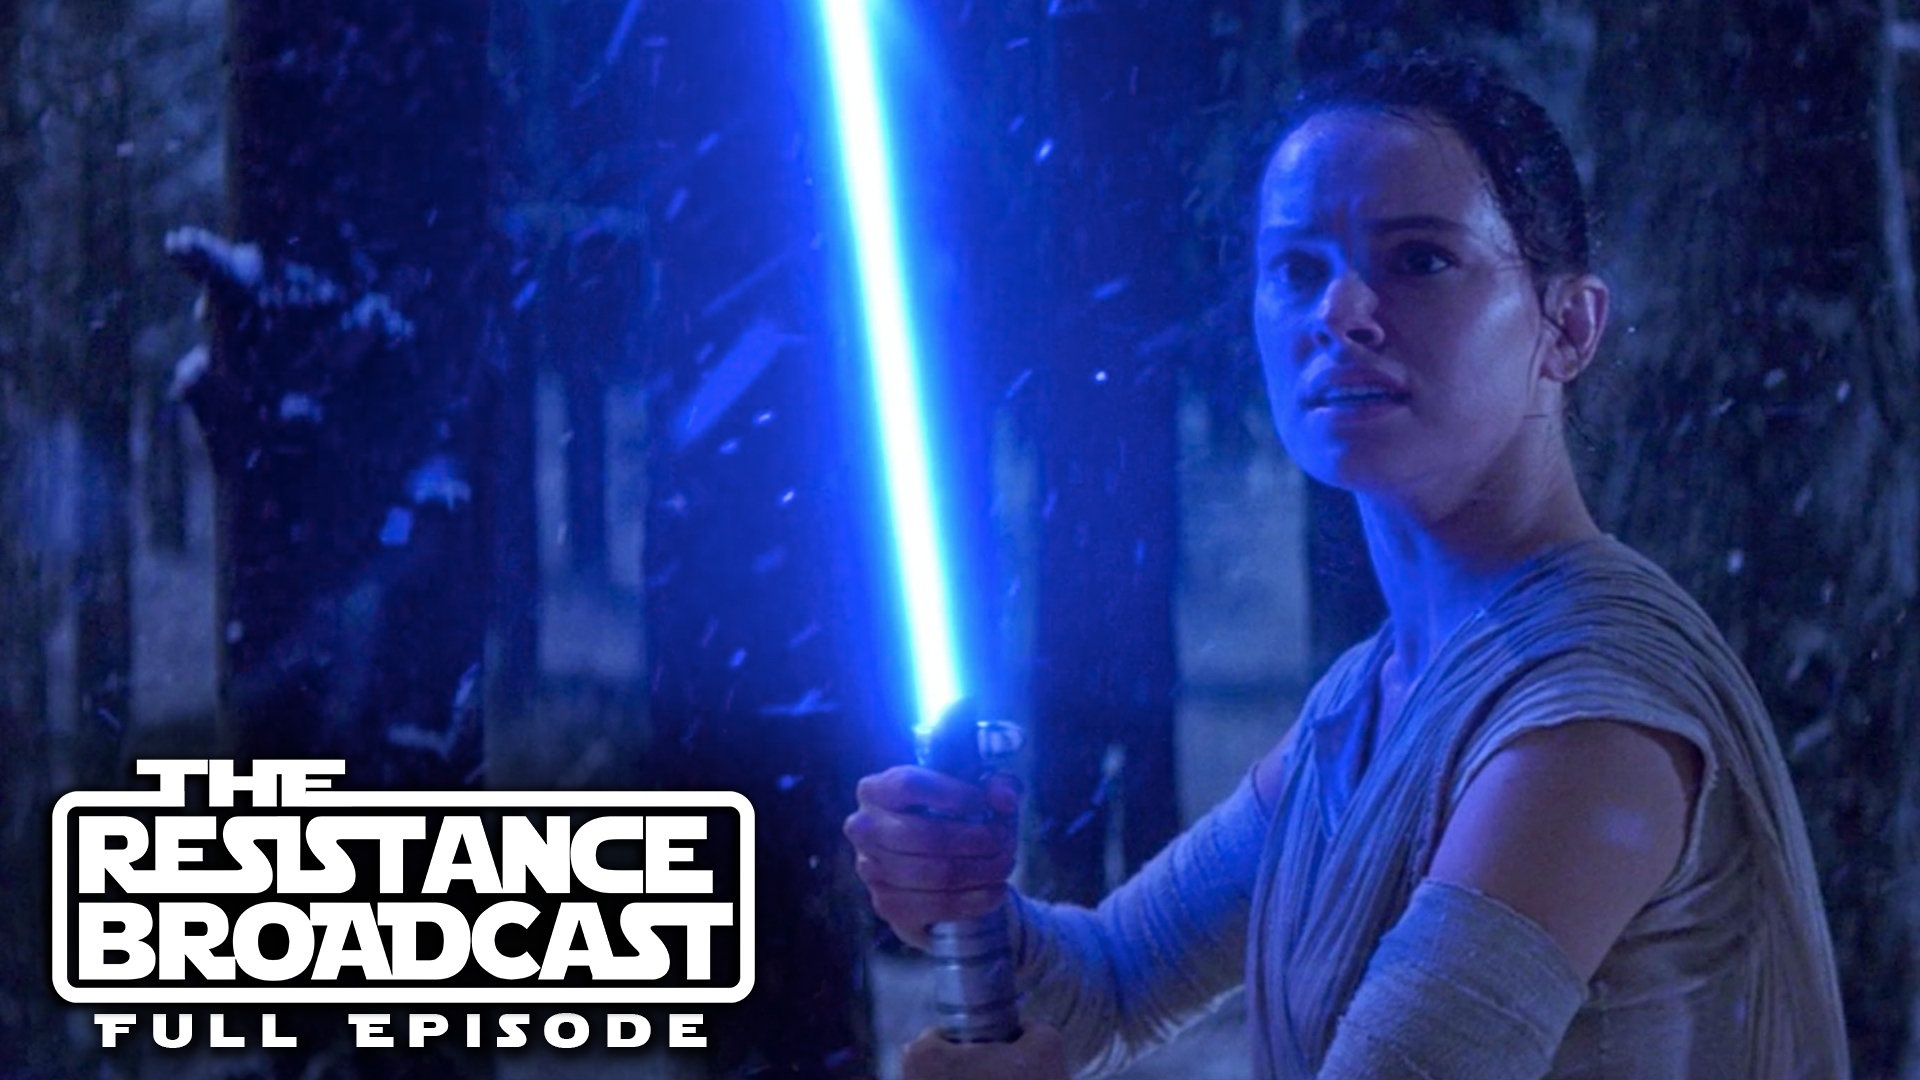 The Resistance Broadcast The 12 Best Scenes In The Star Wars Sequel Trilogy Star Wars News Net